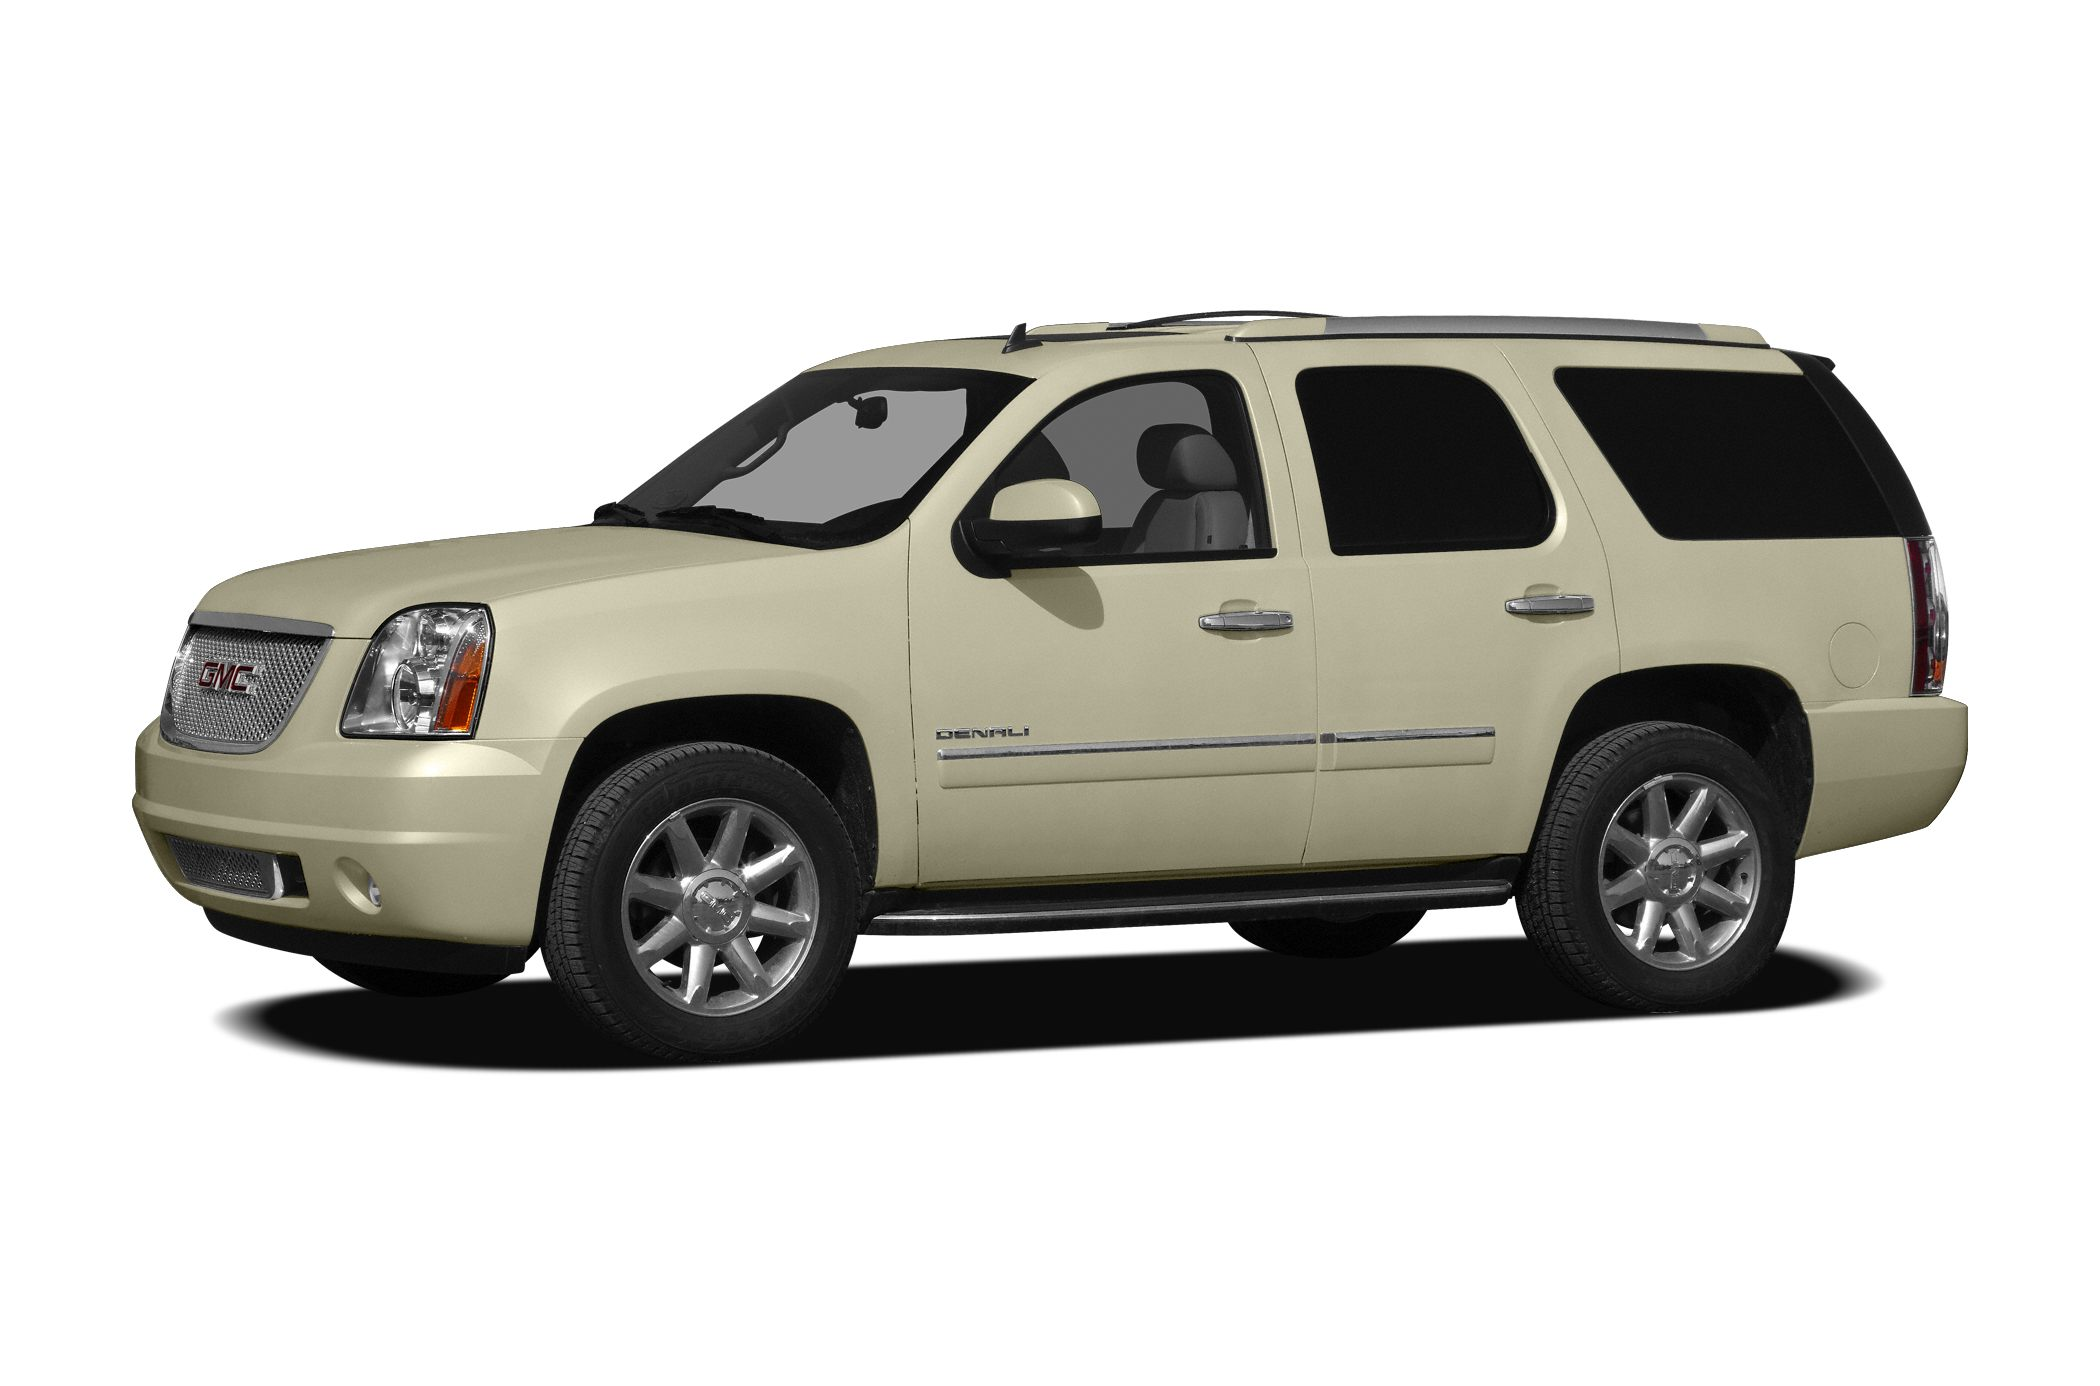 2009 GMC Yukon Denali WHEN IT COMES TO EXCELLENCE IN USED CAR SALES YOU KNOW YOURE AT STAR AUTO